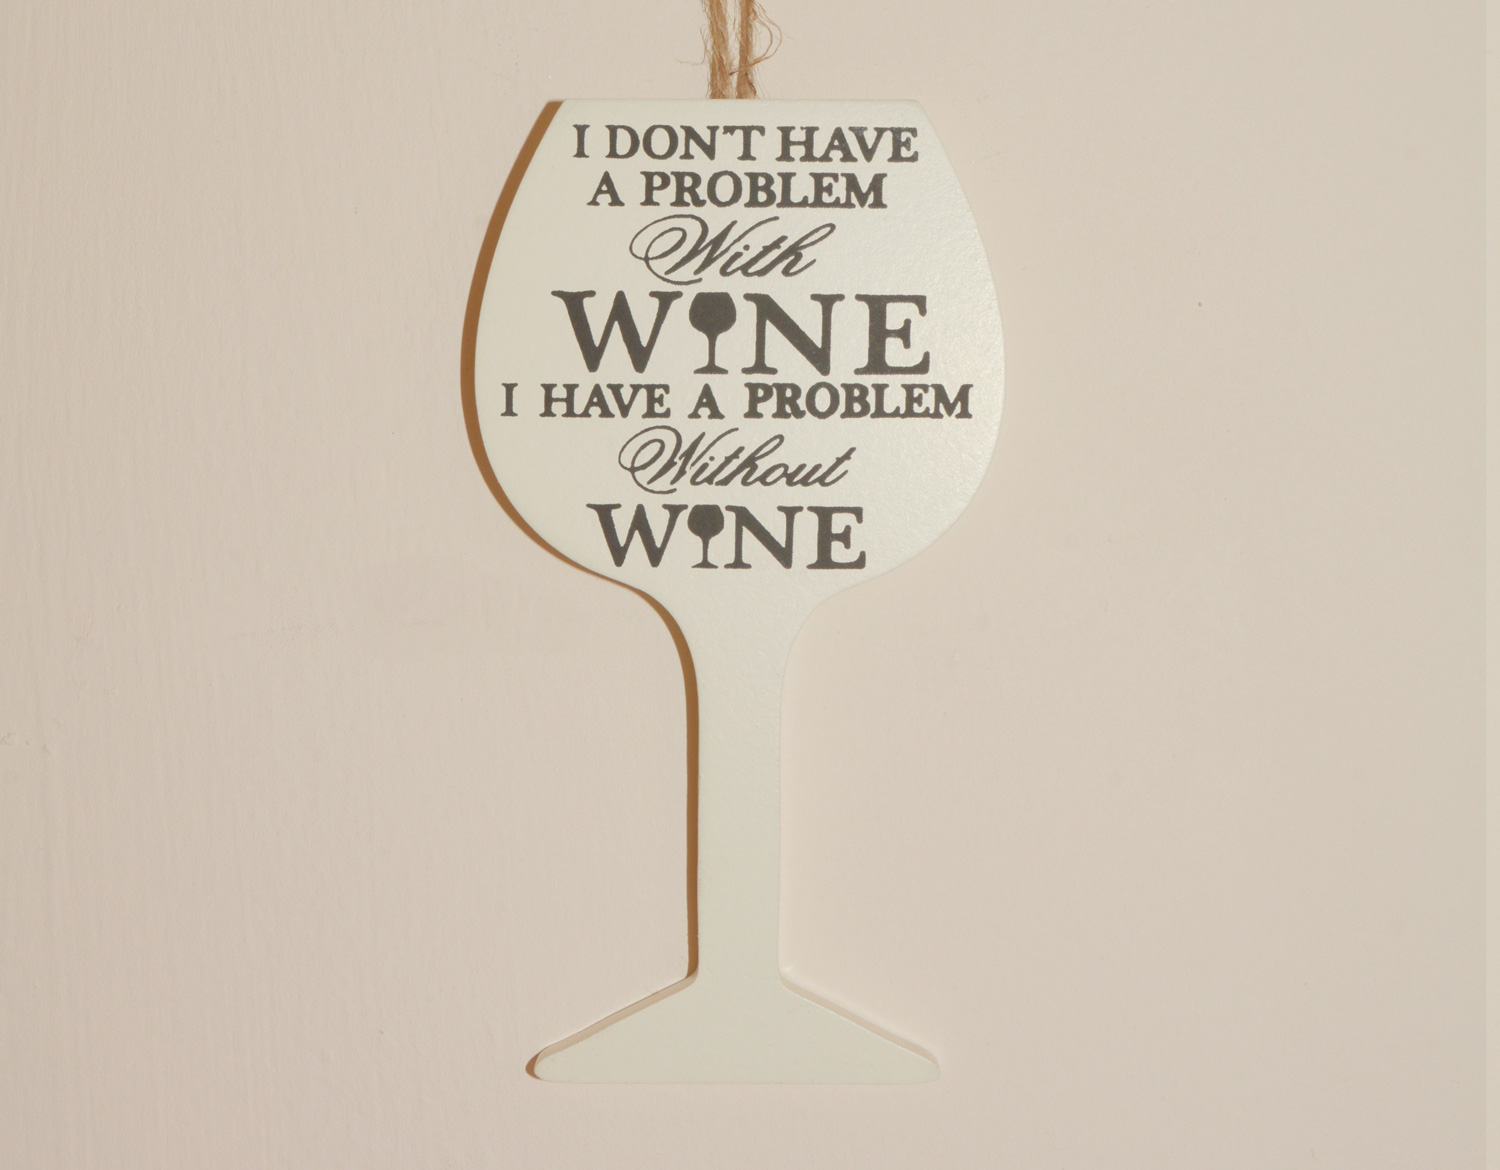 Wine Hanging Sign - I don't have a problem with wine I have a problem without wine